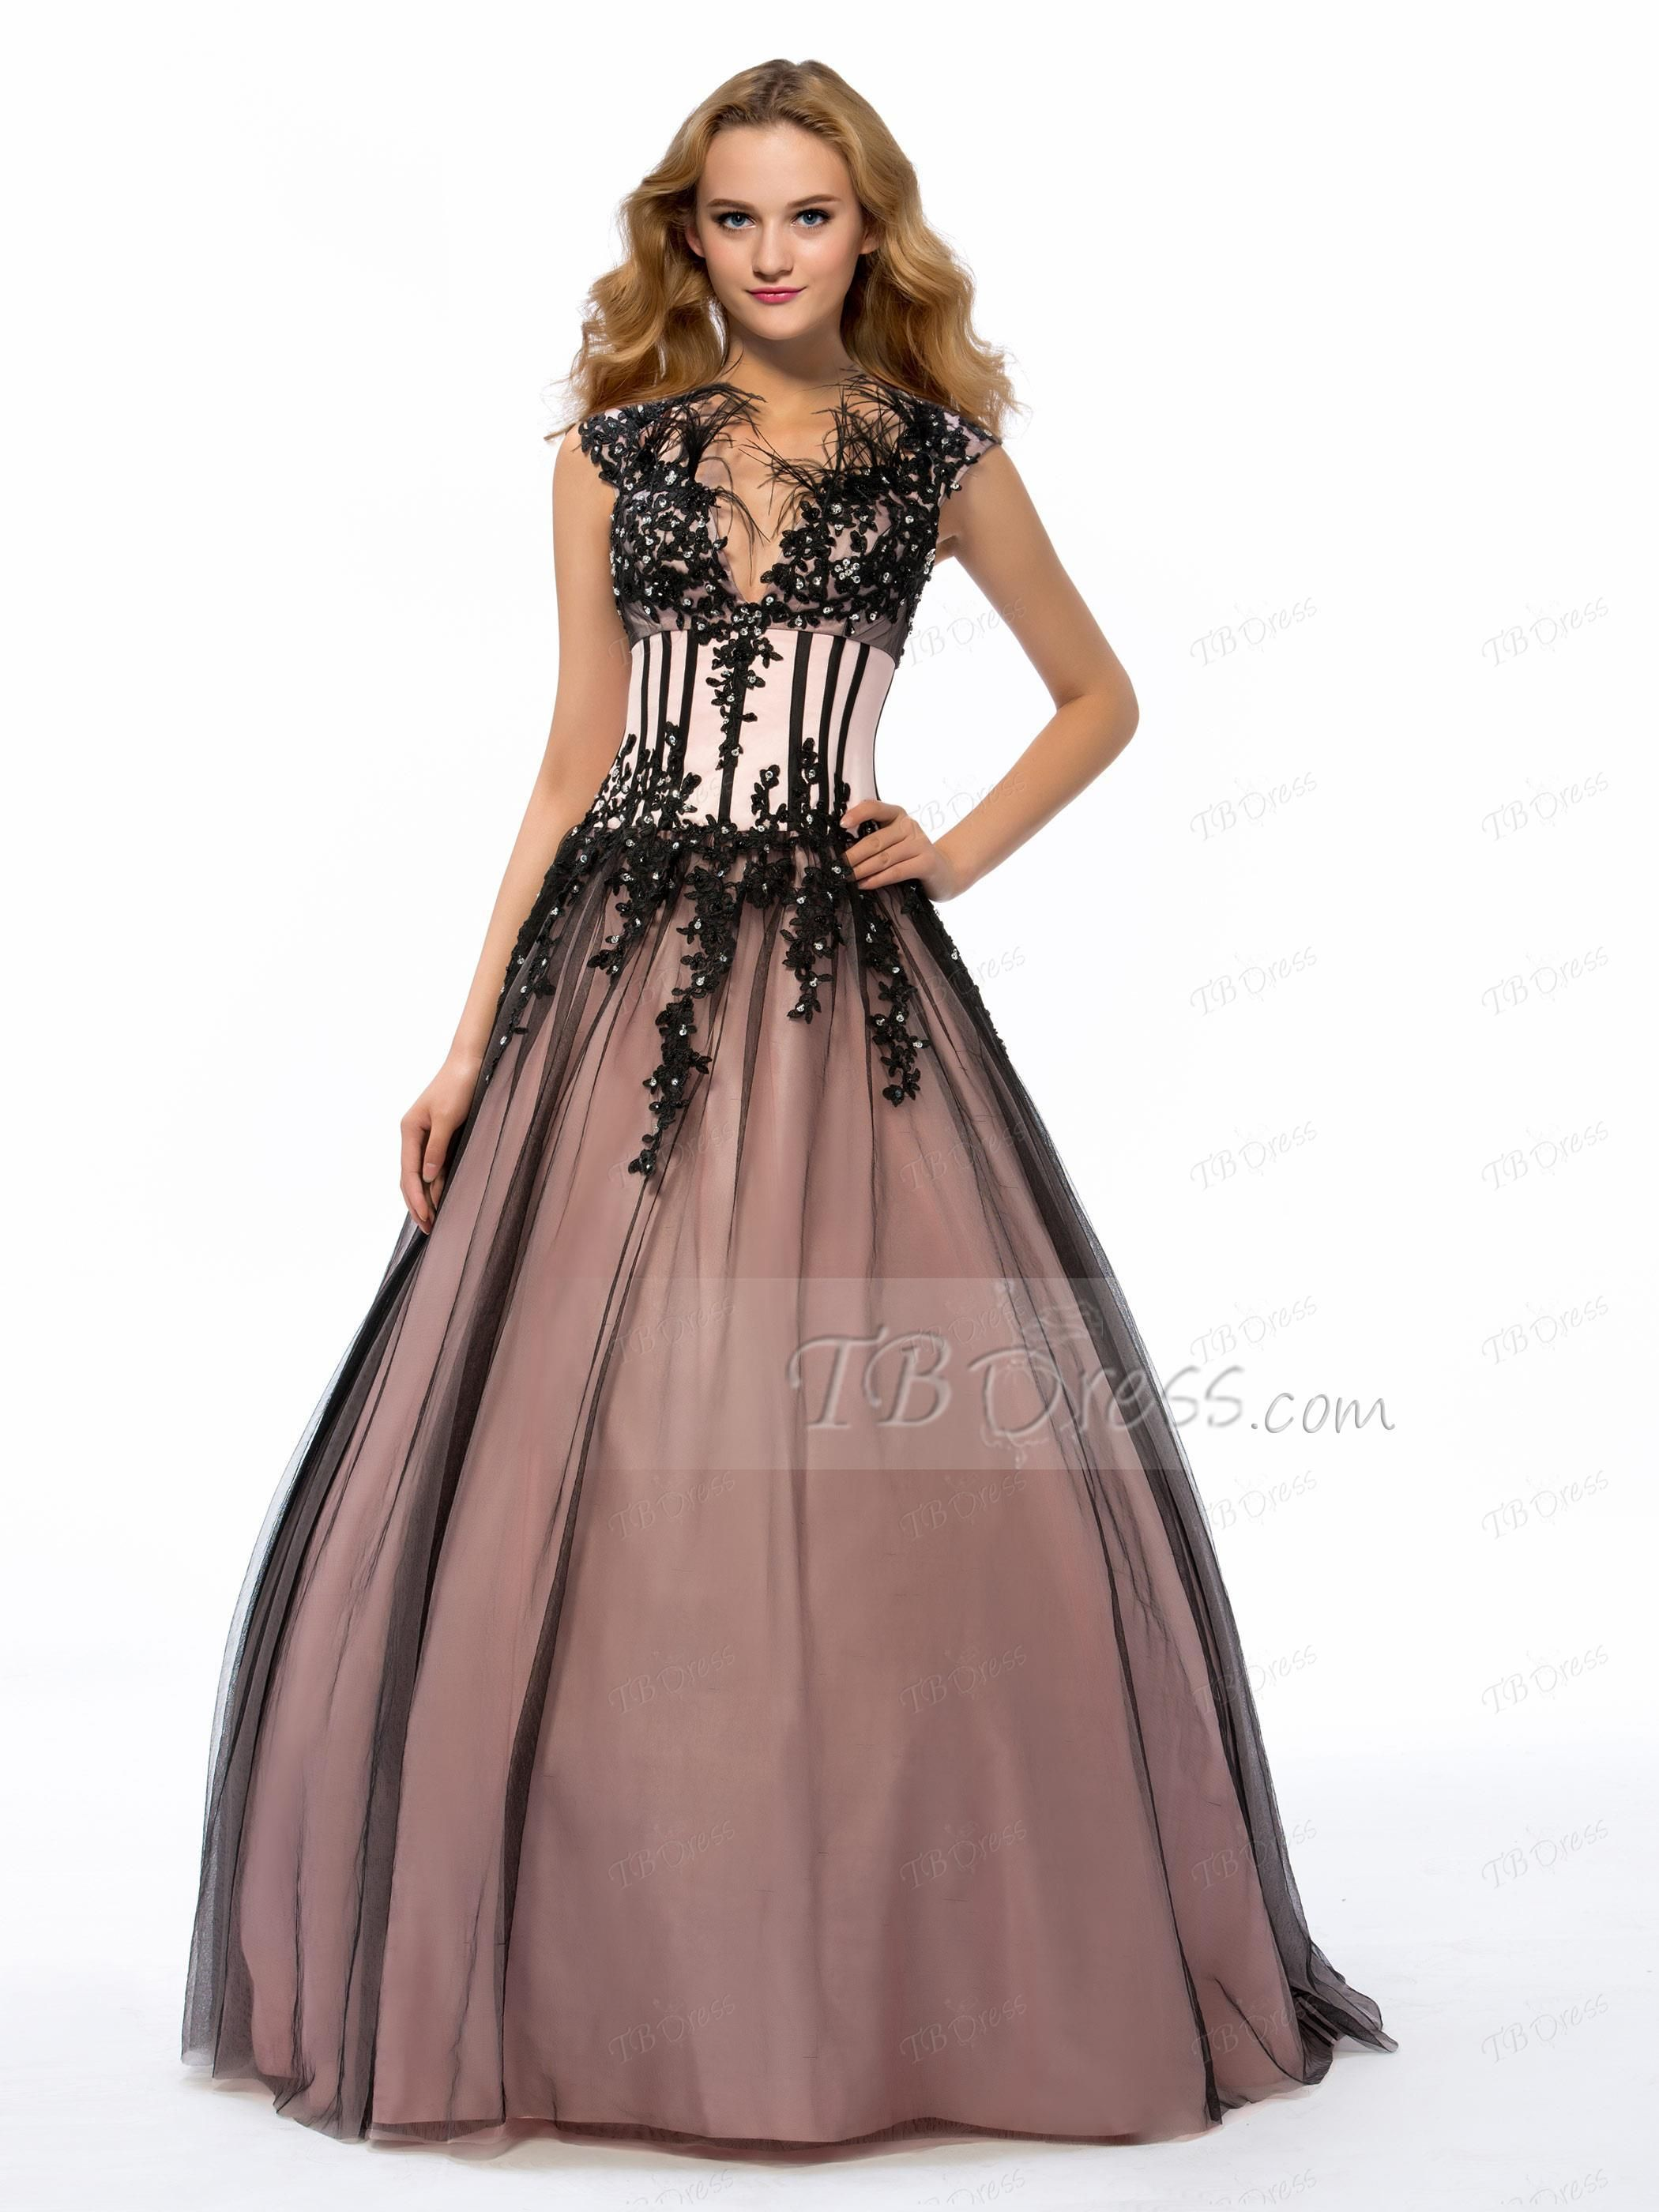 masquerade ball gowns - Google Search | Old fashioned | Pinterest ...